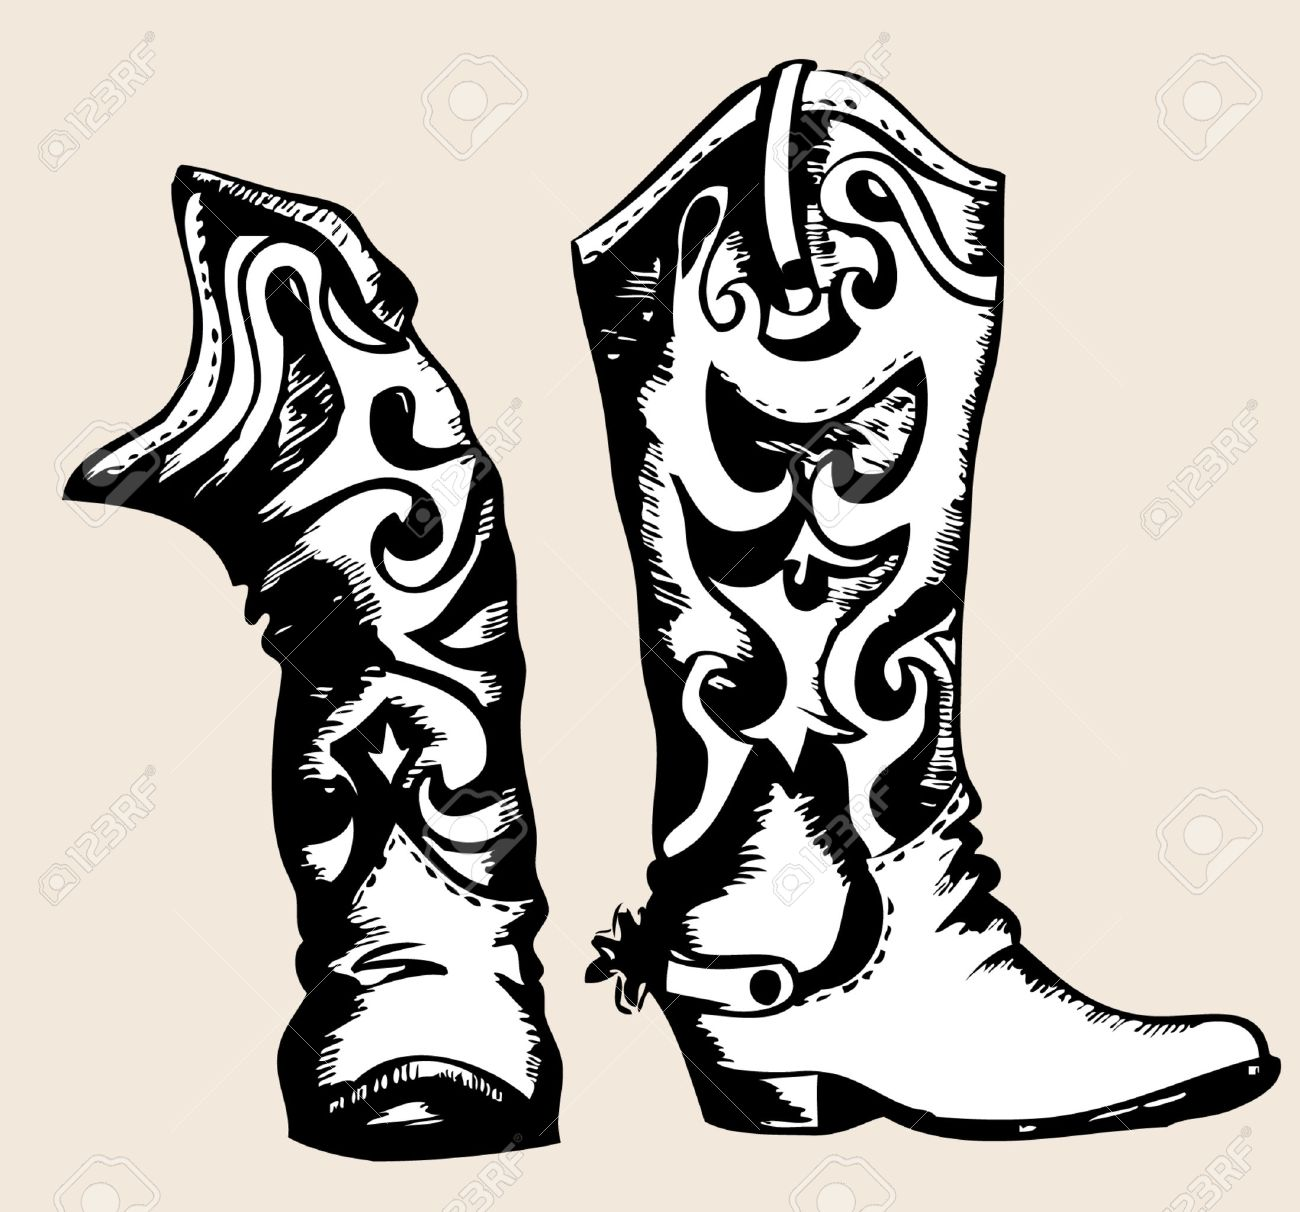 cowboy boot stock photos royalty free cowboy boot images and pictures